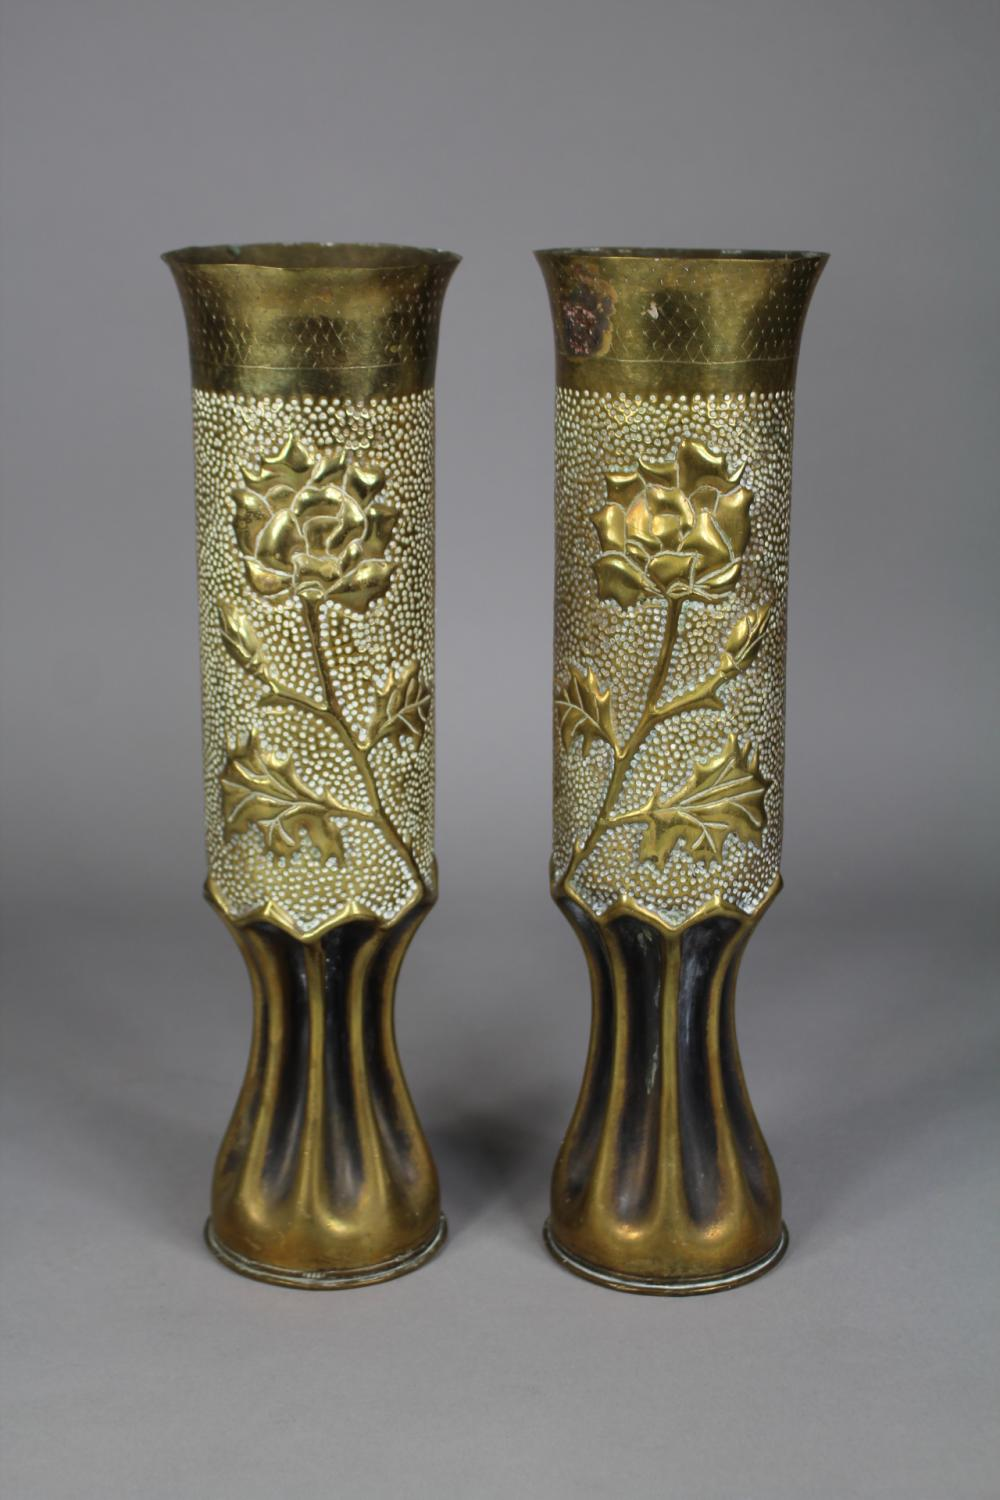 Pair of French WWI trench art brass vases, each approx 34cm H (2)